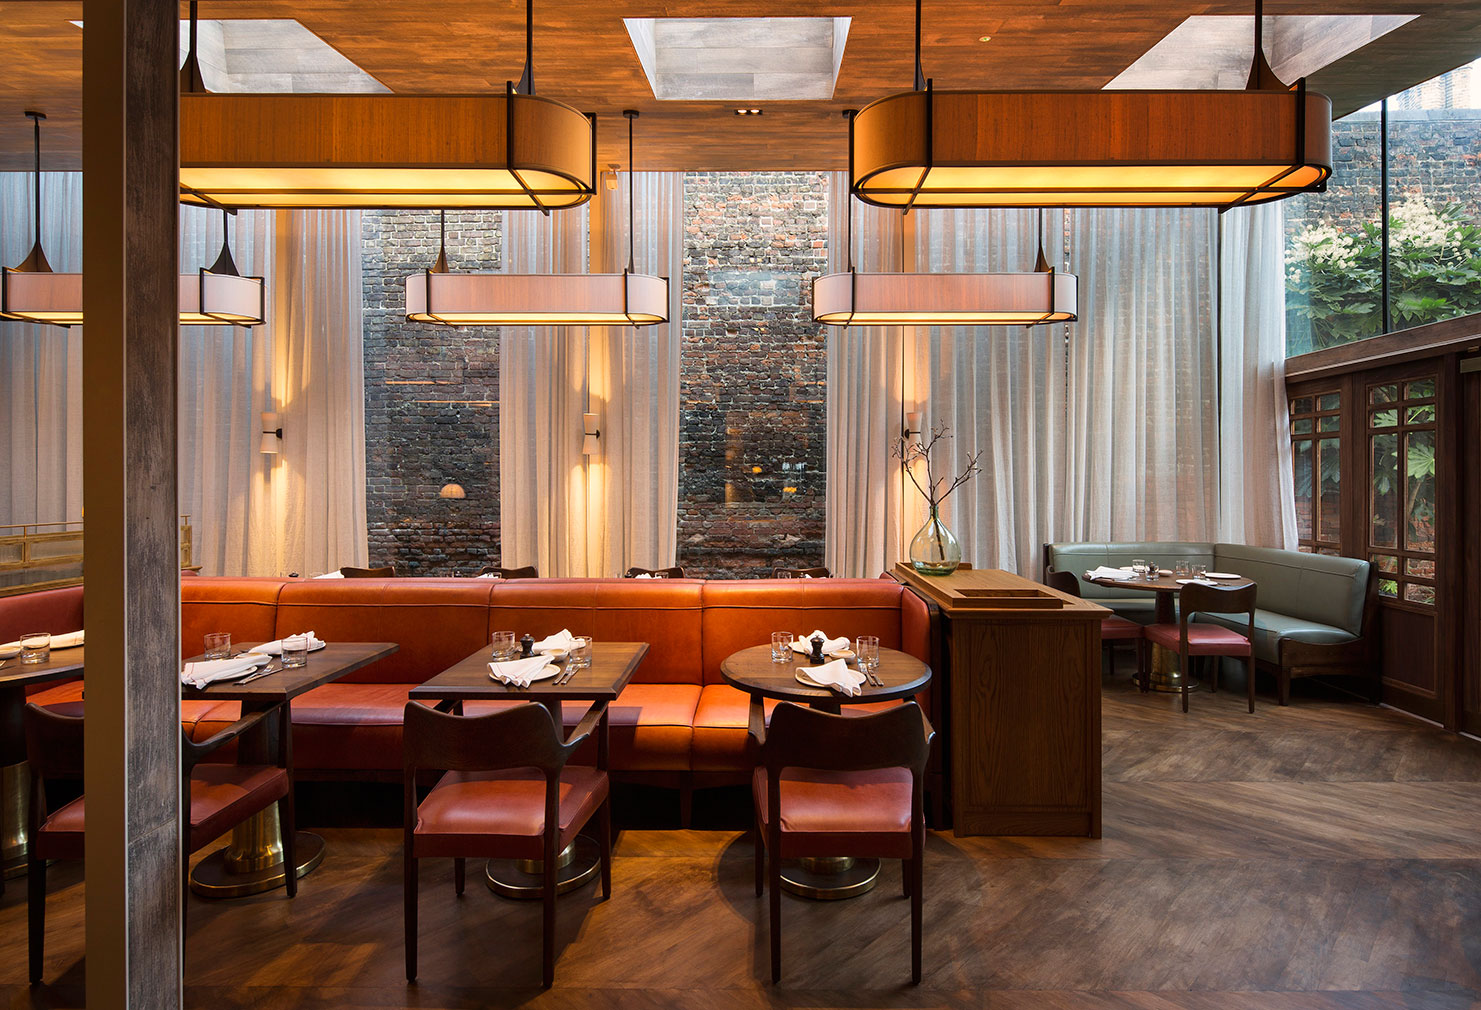 London Restaurants The 10 Best New Openings The Spaces